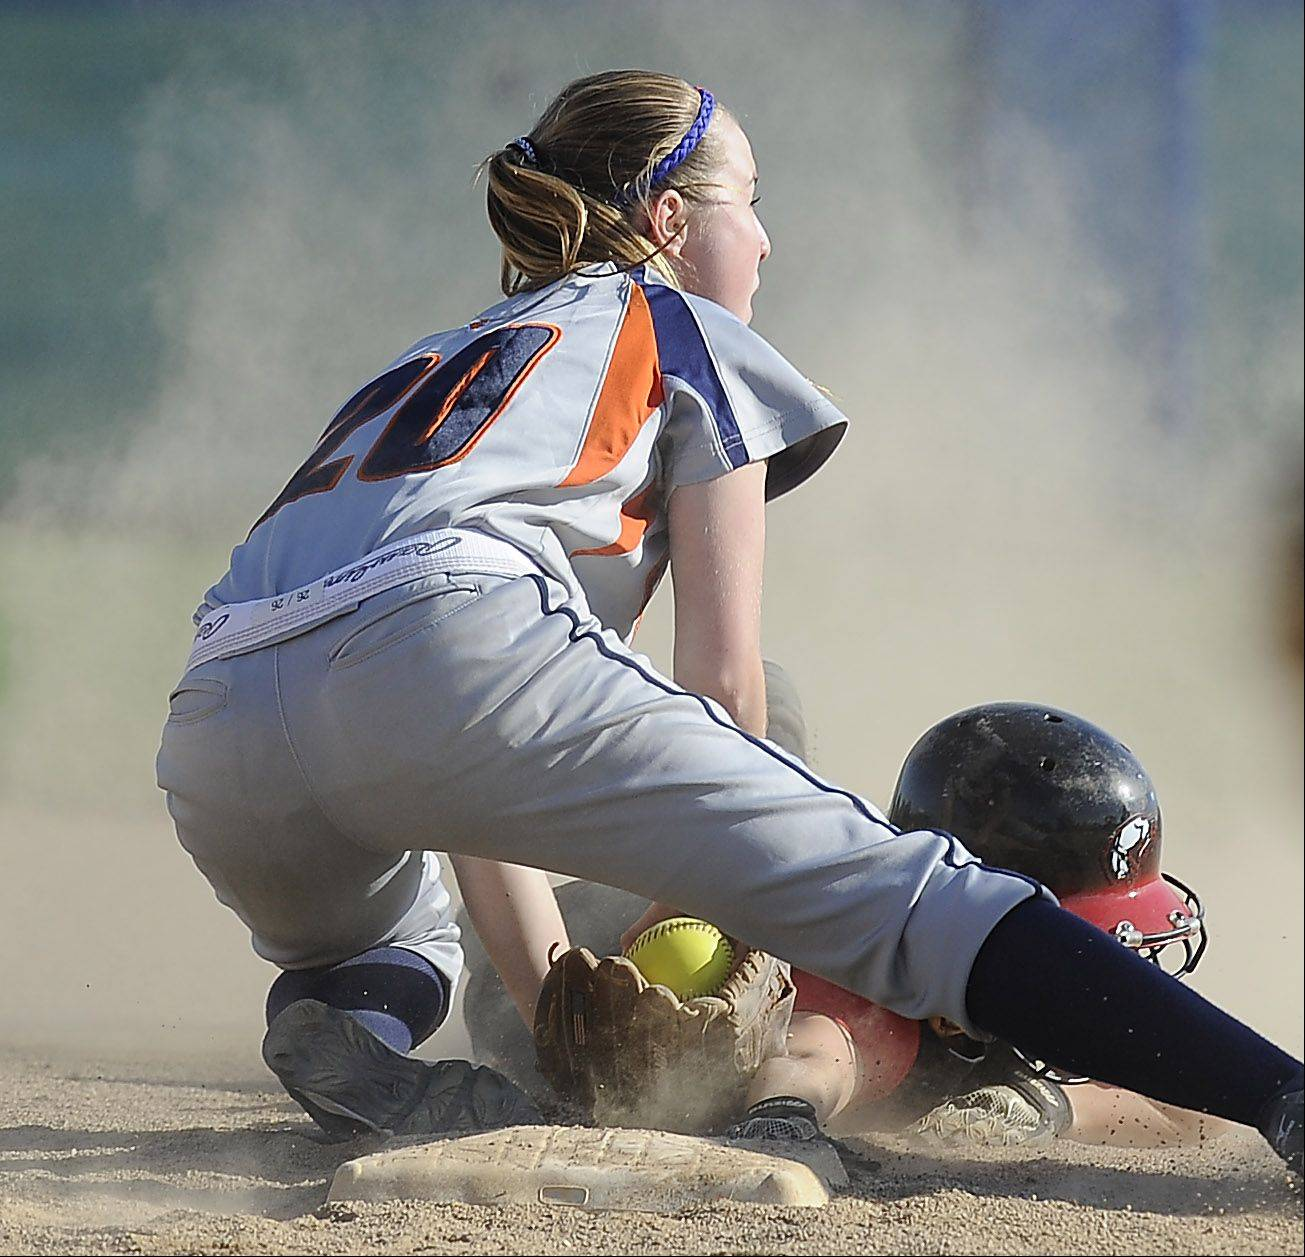 Buffalo Grove's Dea Barton puts the tag on Barrington's Jenna Privatsky as she slid past second base in the MSL championship game at Buffalo Grove on Thursday.